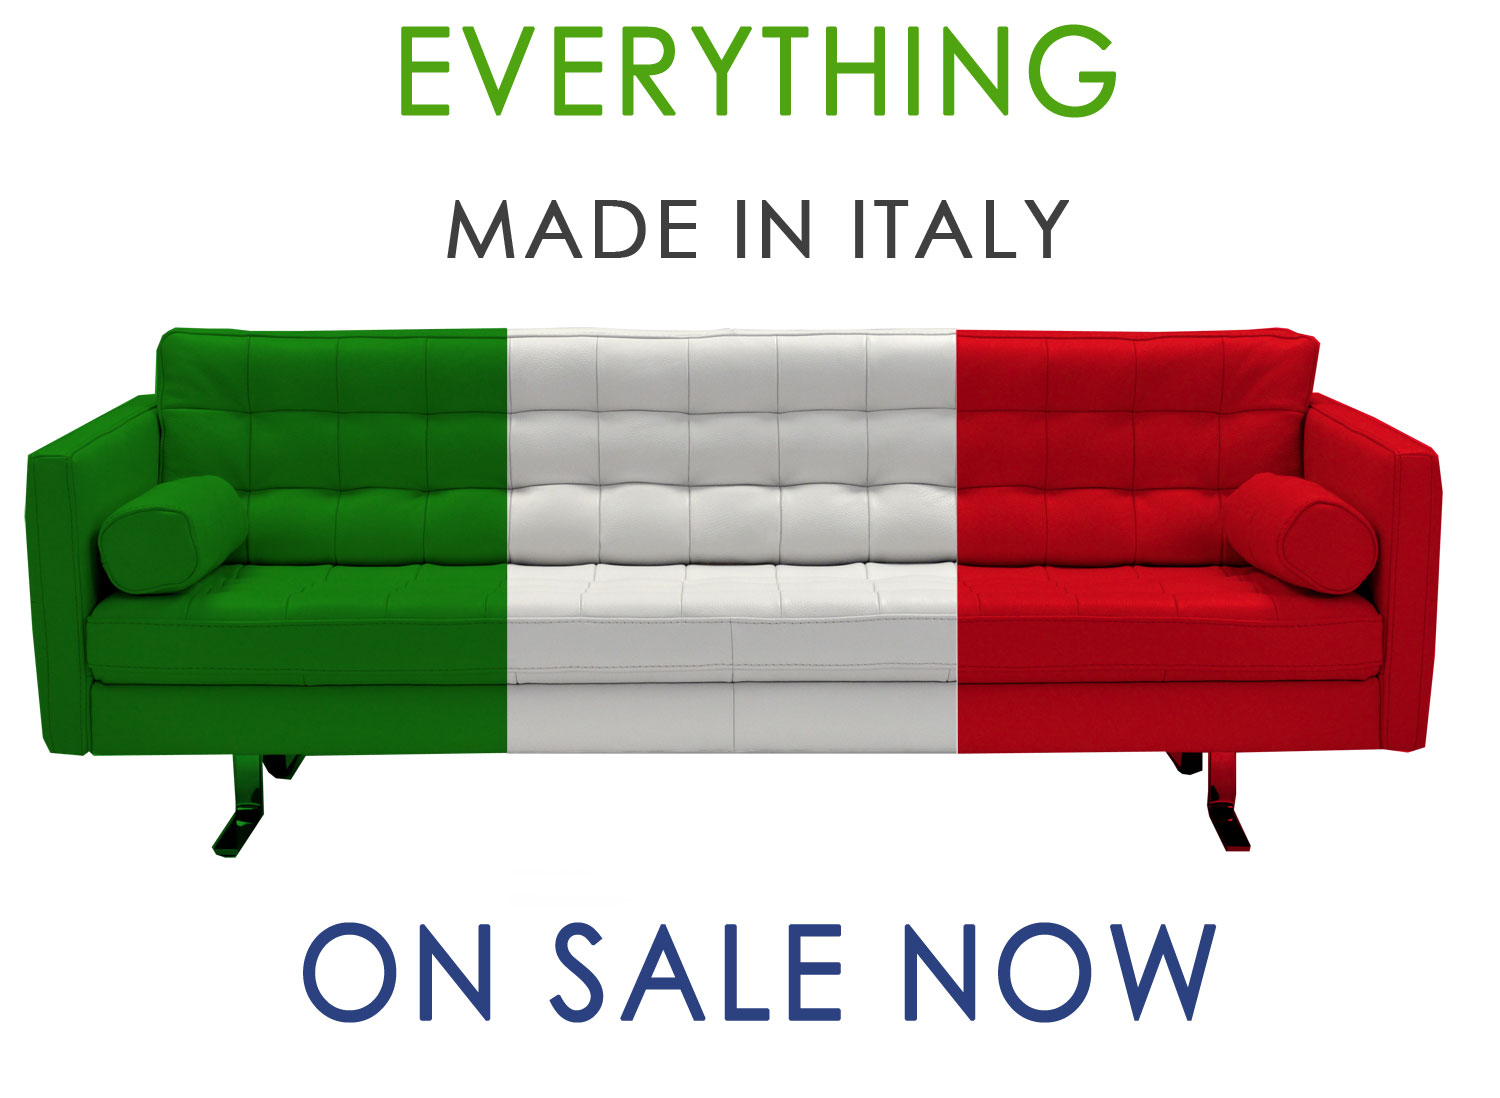 Great Italy sale - Furniture